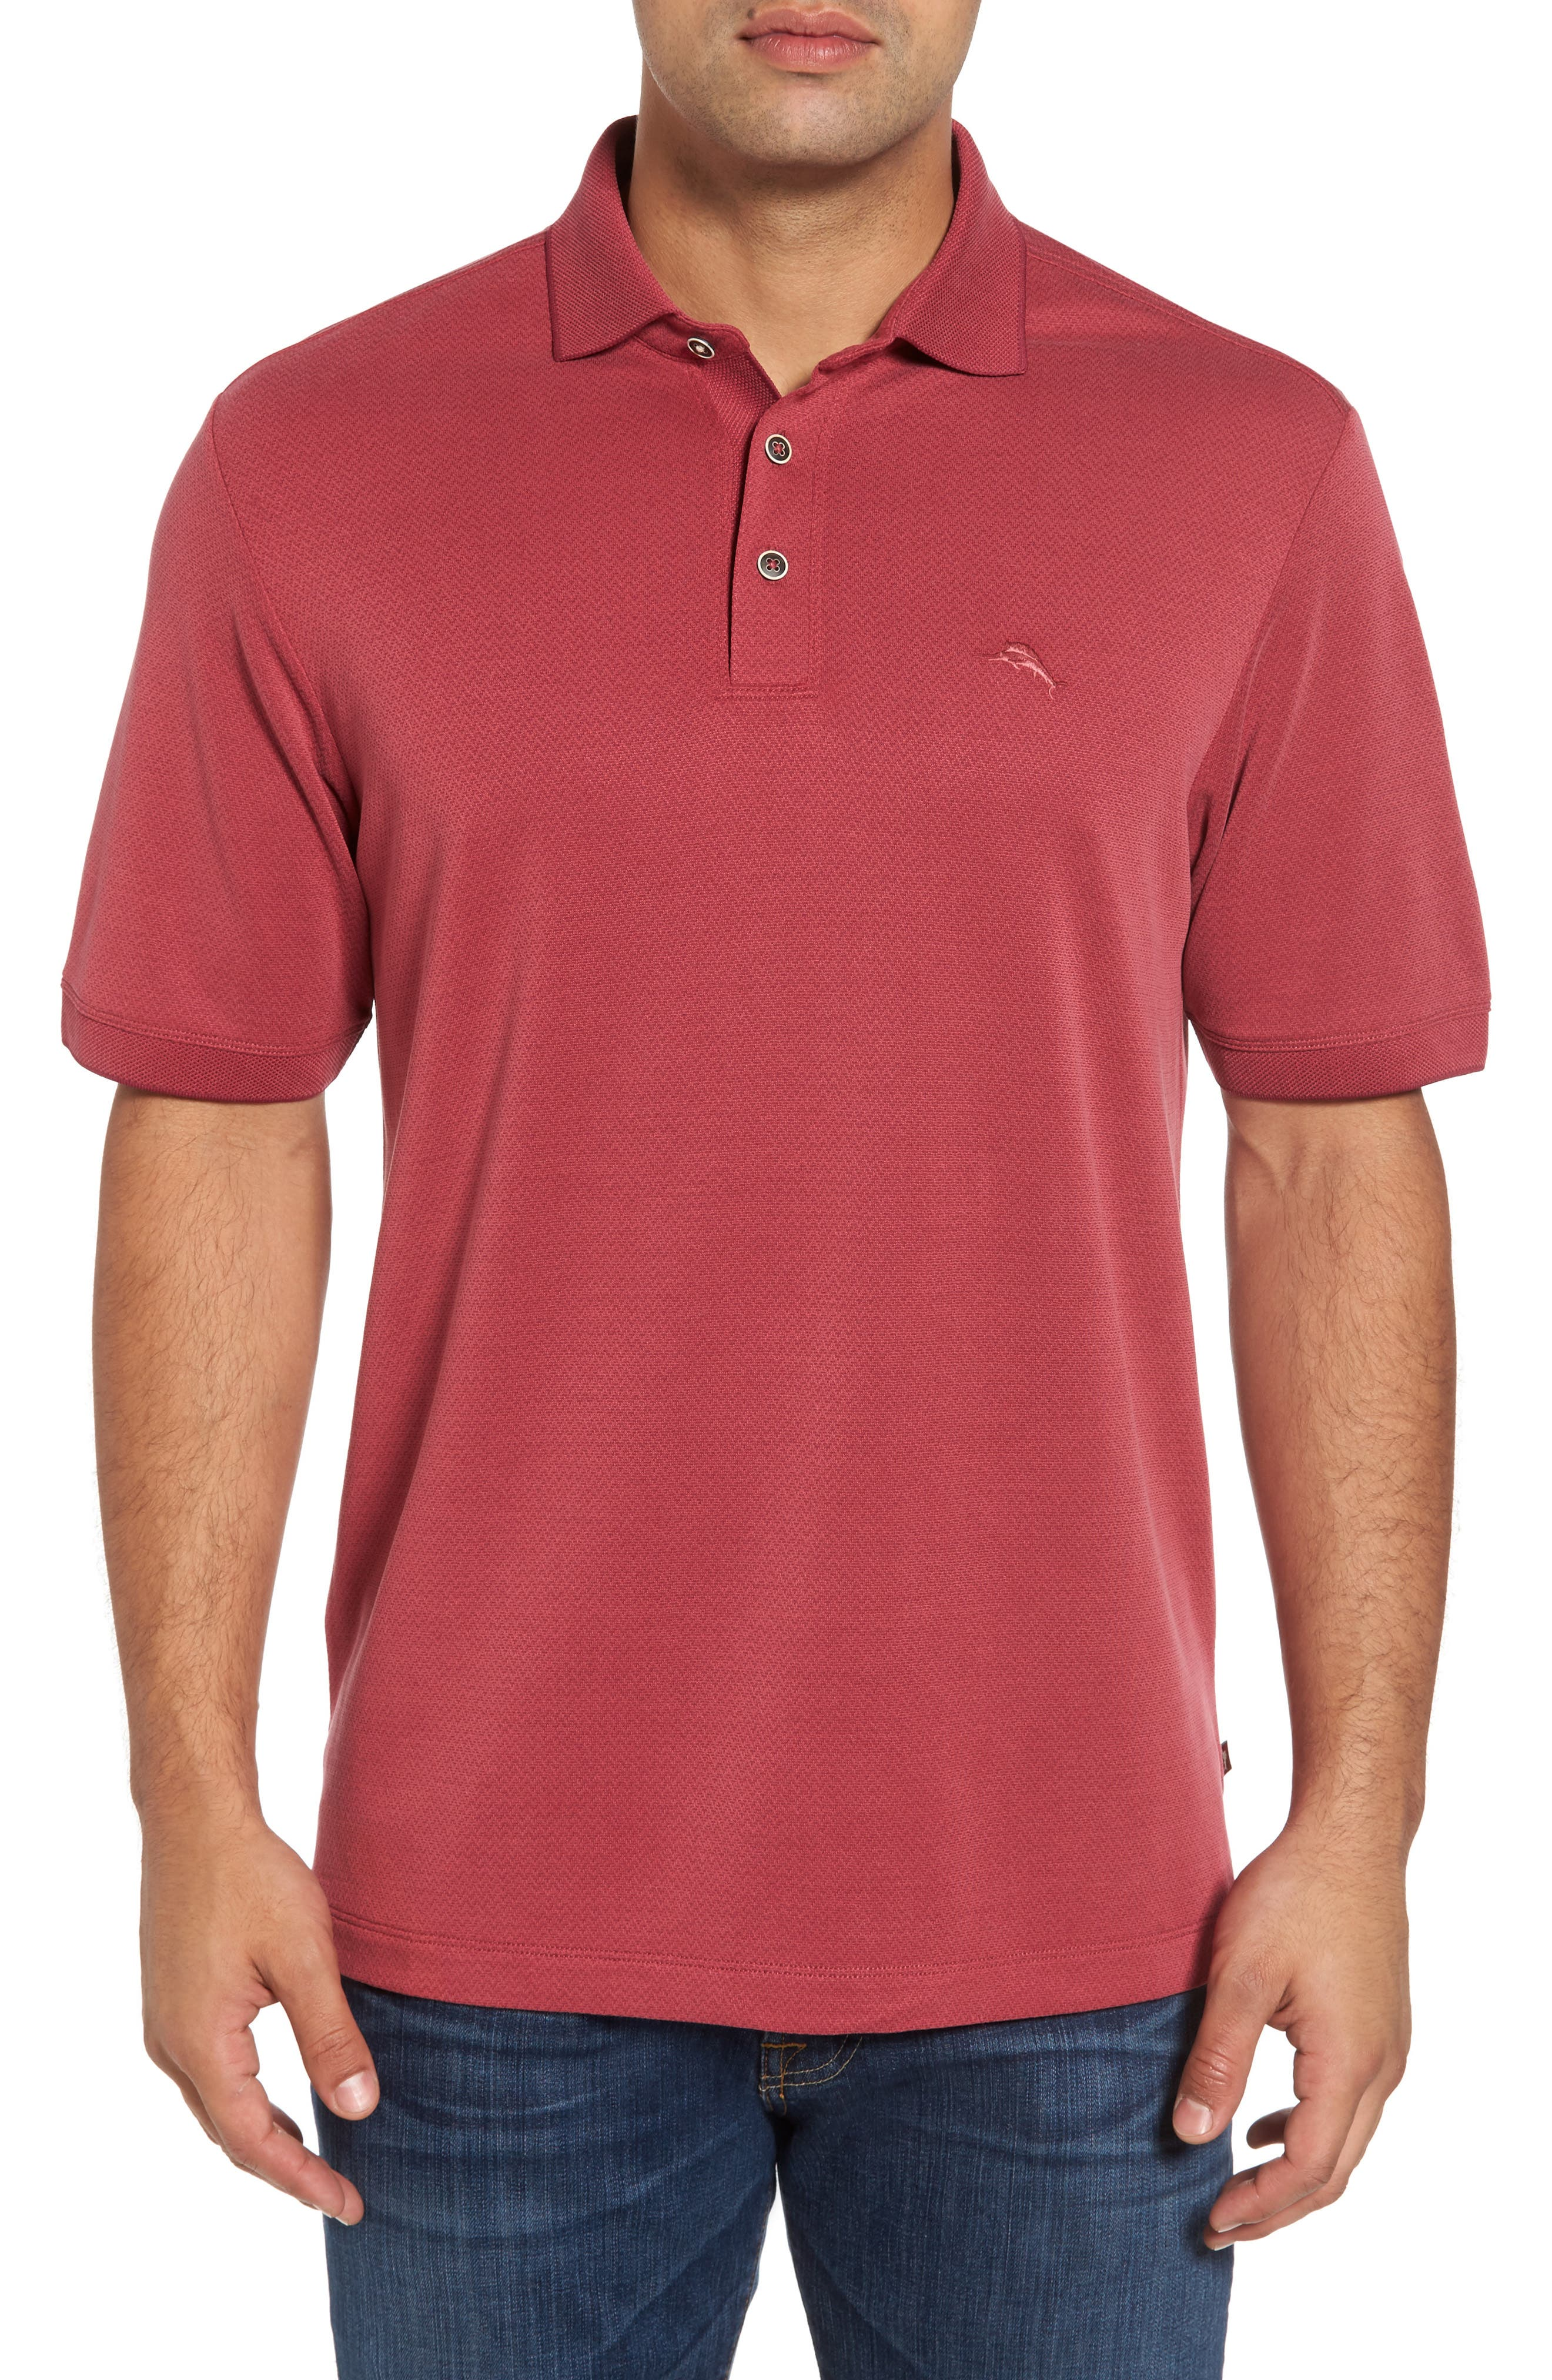 Ocean View Short Sleeve Jacquard Polo,                             Main thumbnail 1, color,                             Beet Red